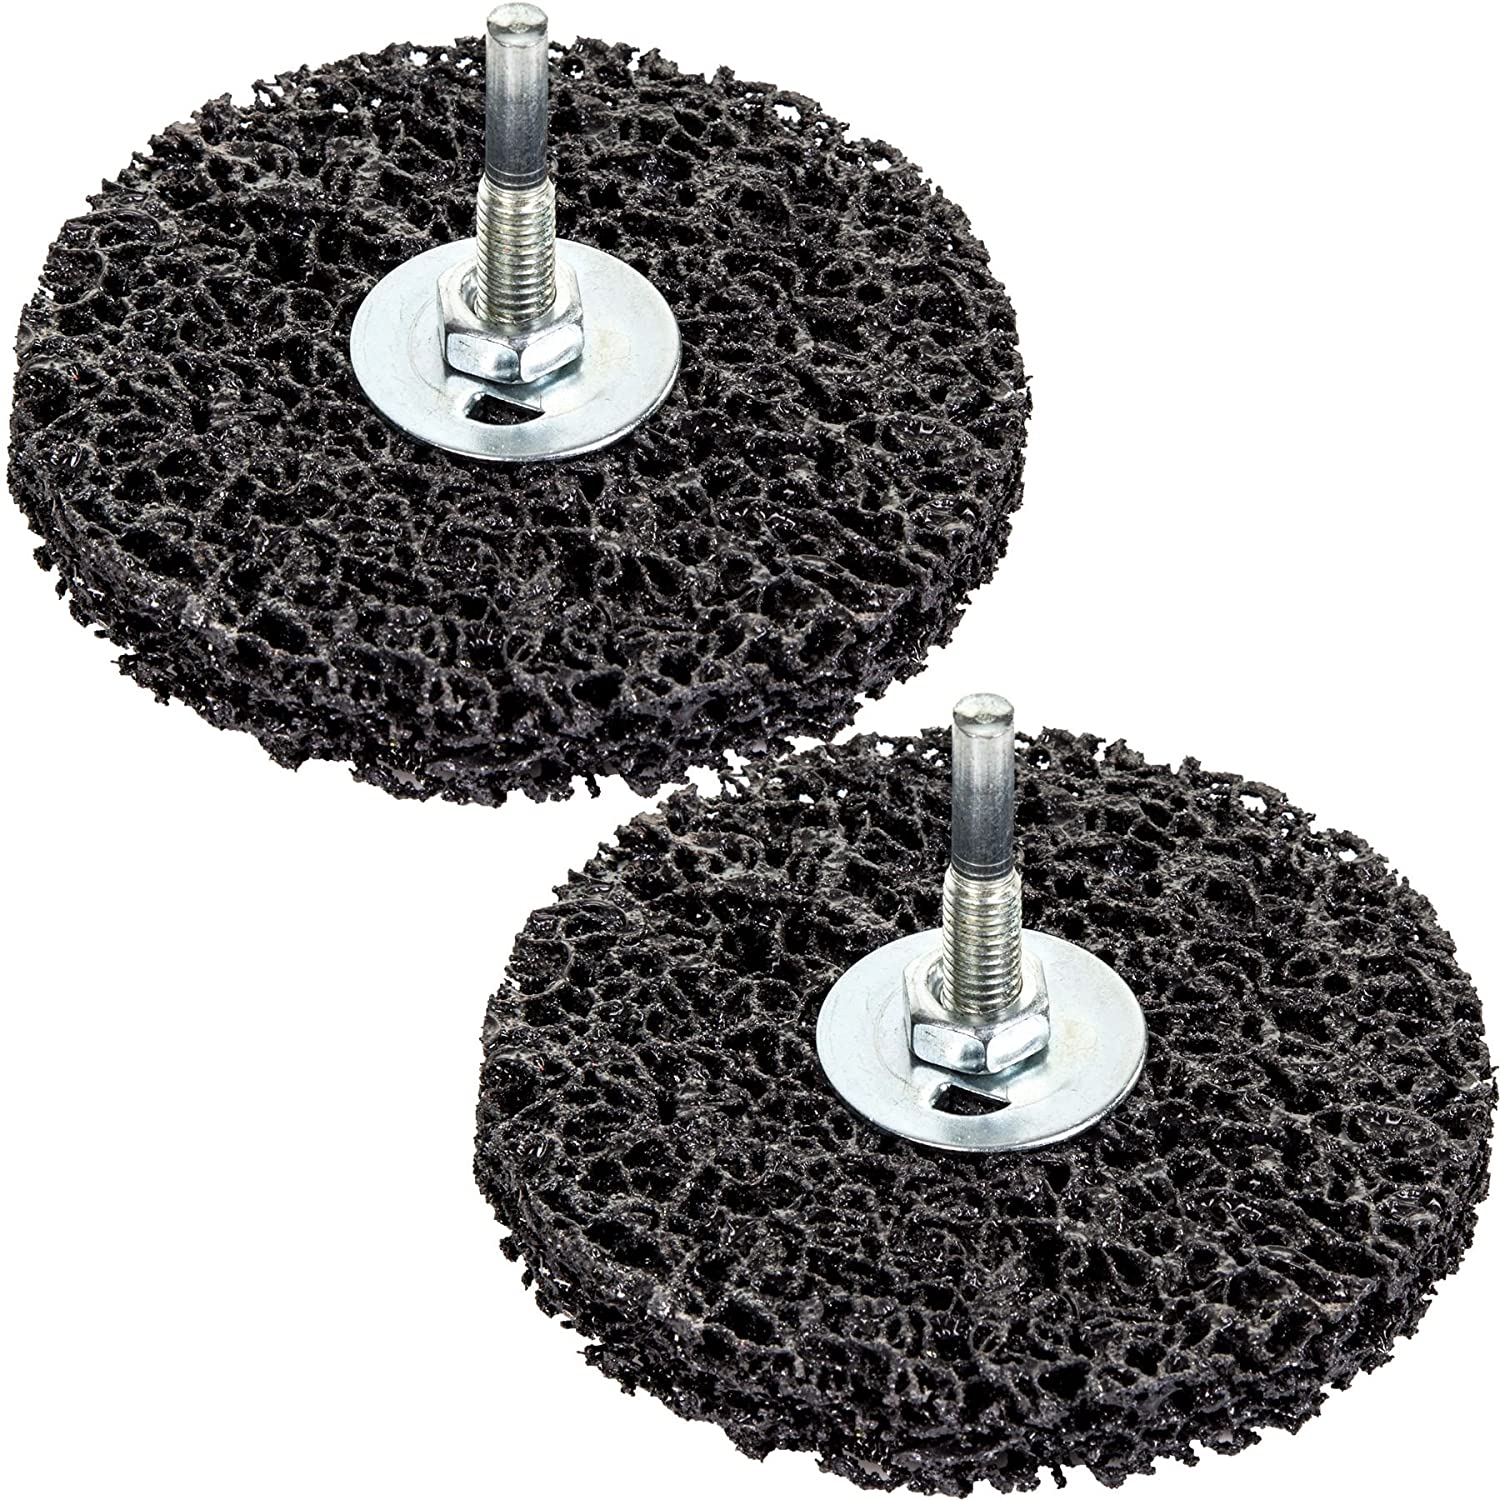 2x Rust/Paint 100mm Remover Disc Wheels - Grinder/Drill Abrasive Stripping Bits White Hinge